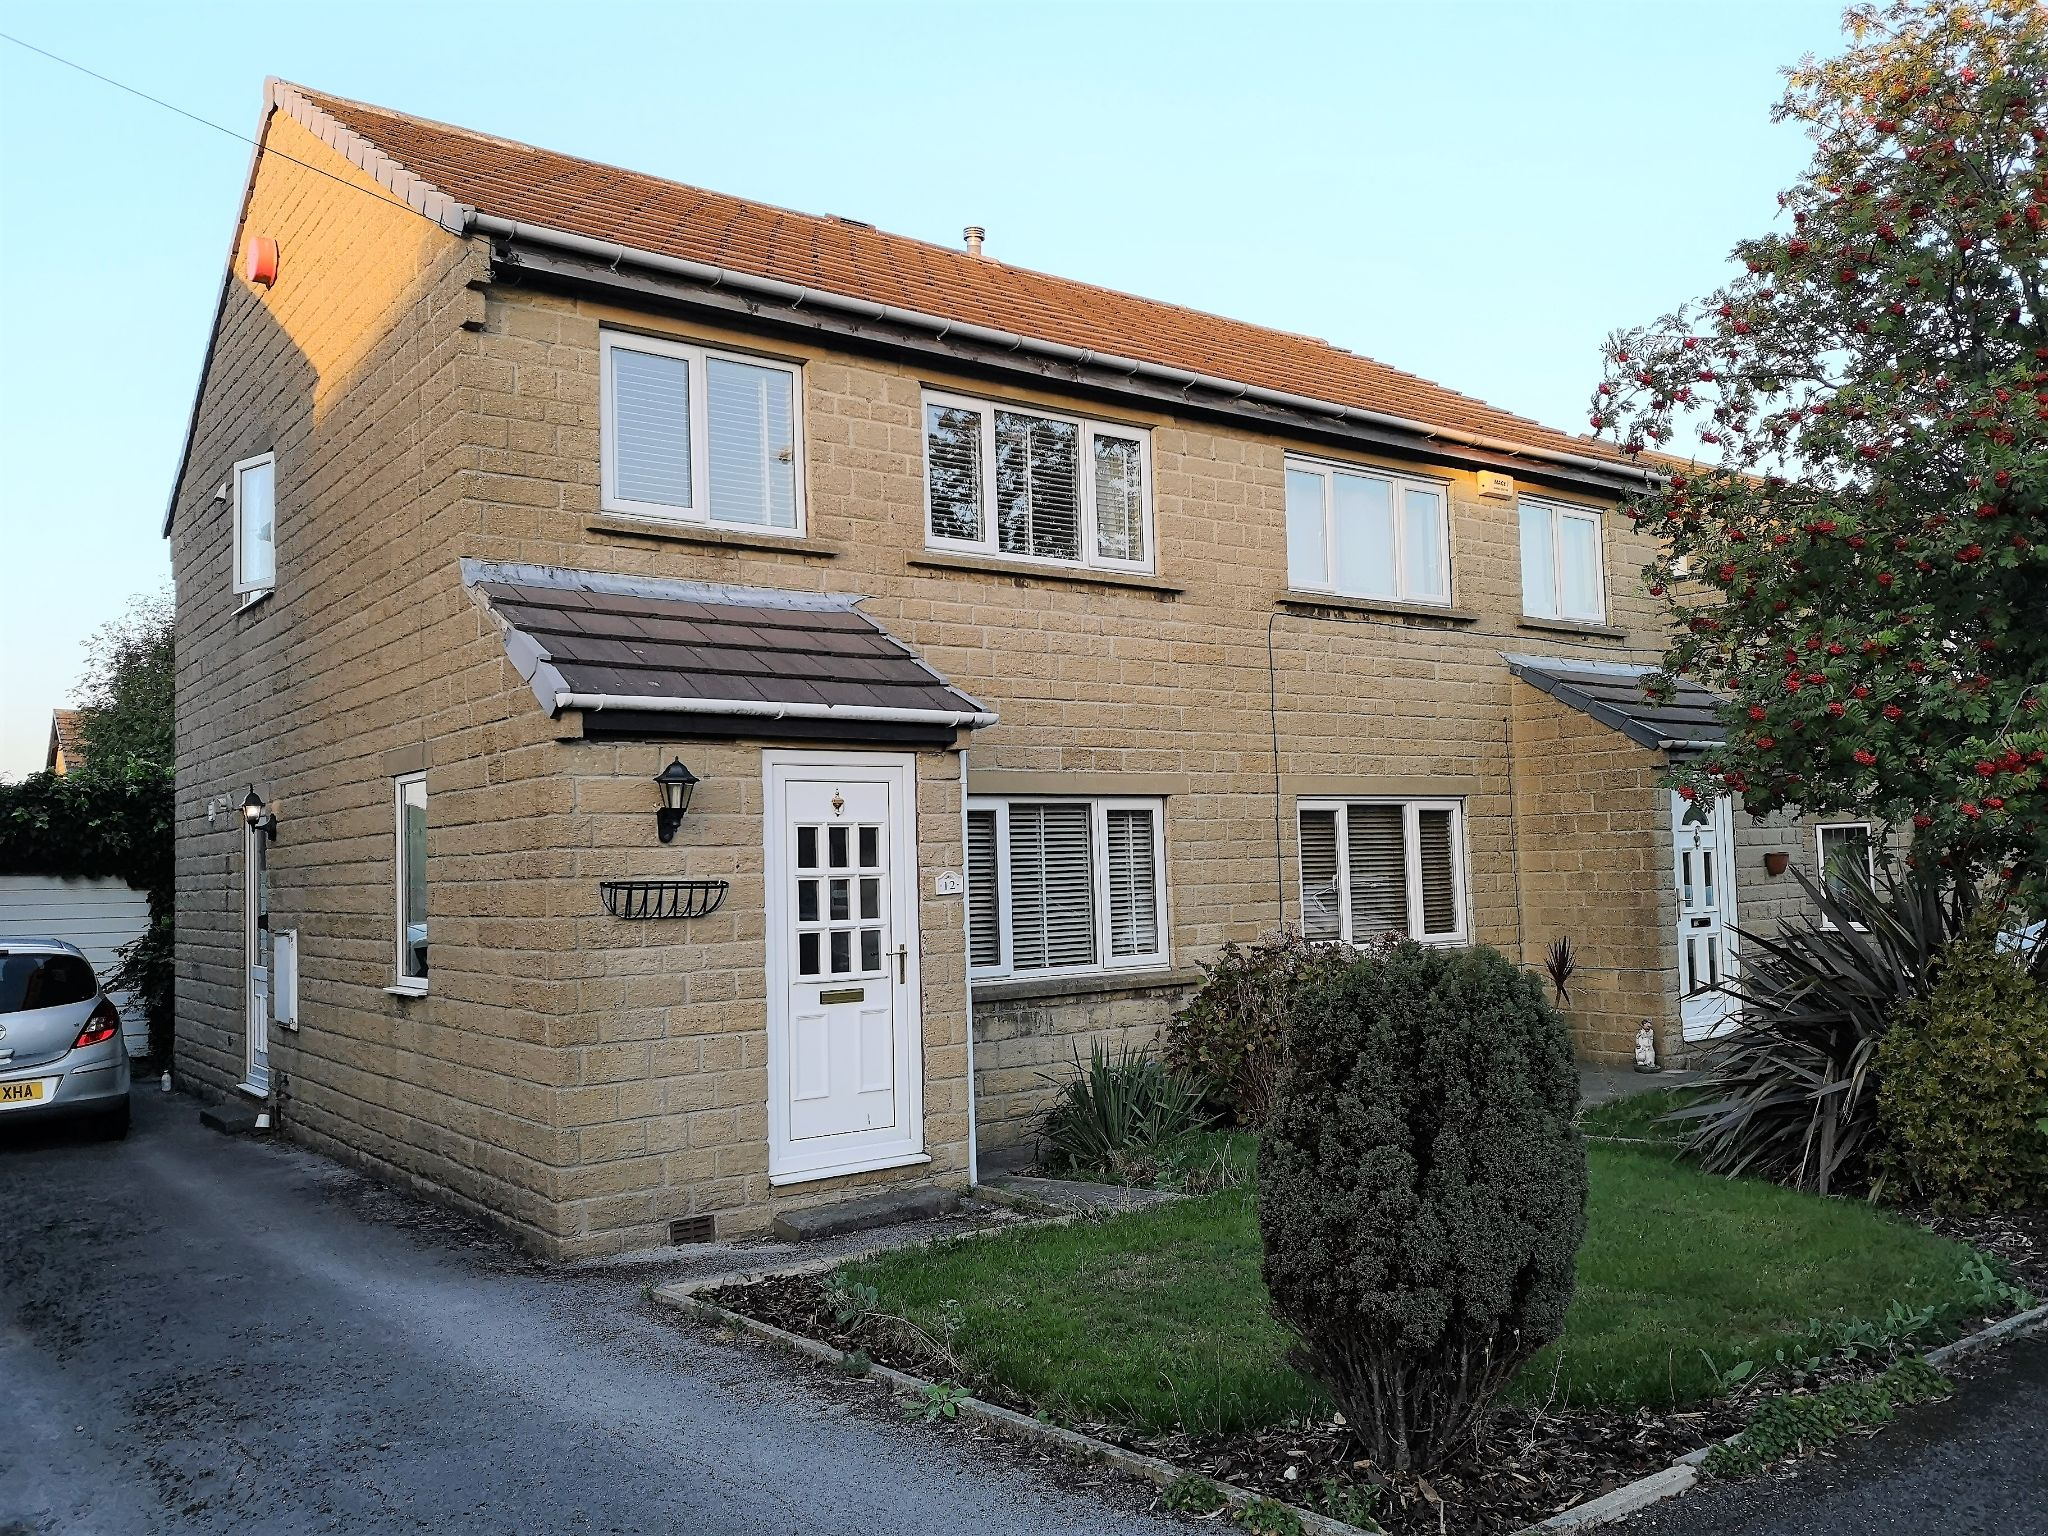 3 bedroom semi-detached house SSTC in Huddersfield - Photograph 1